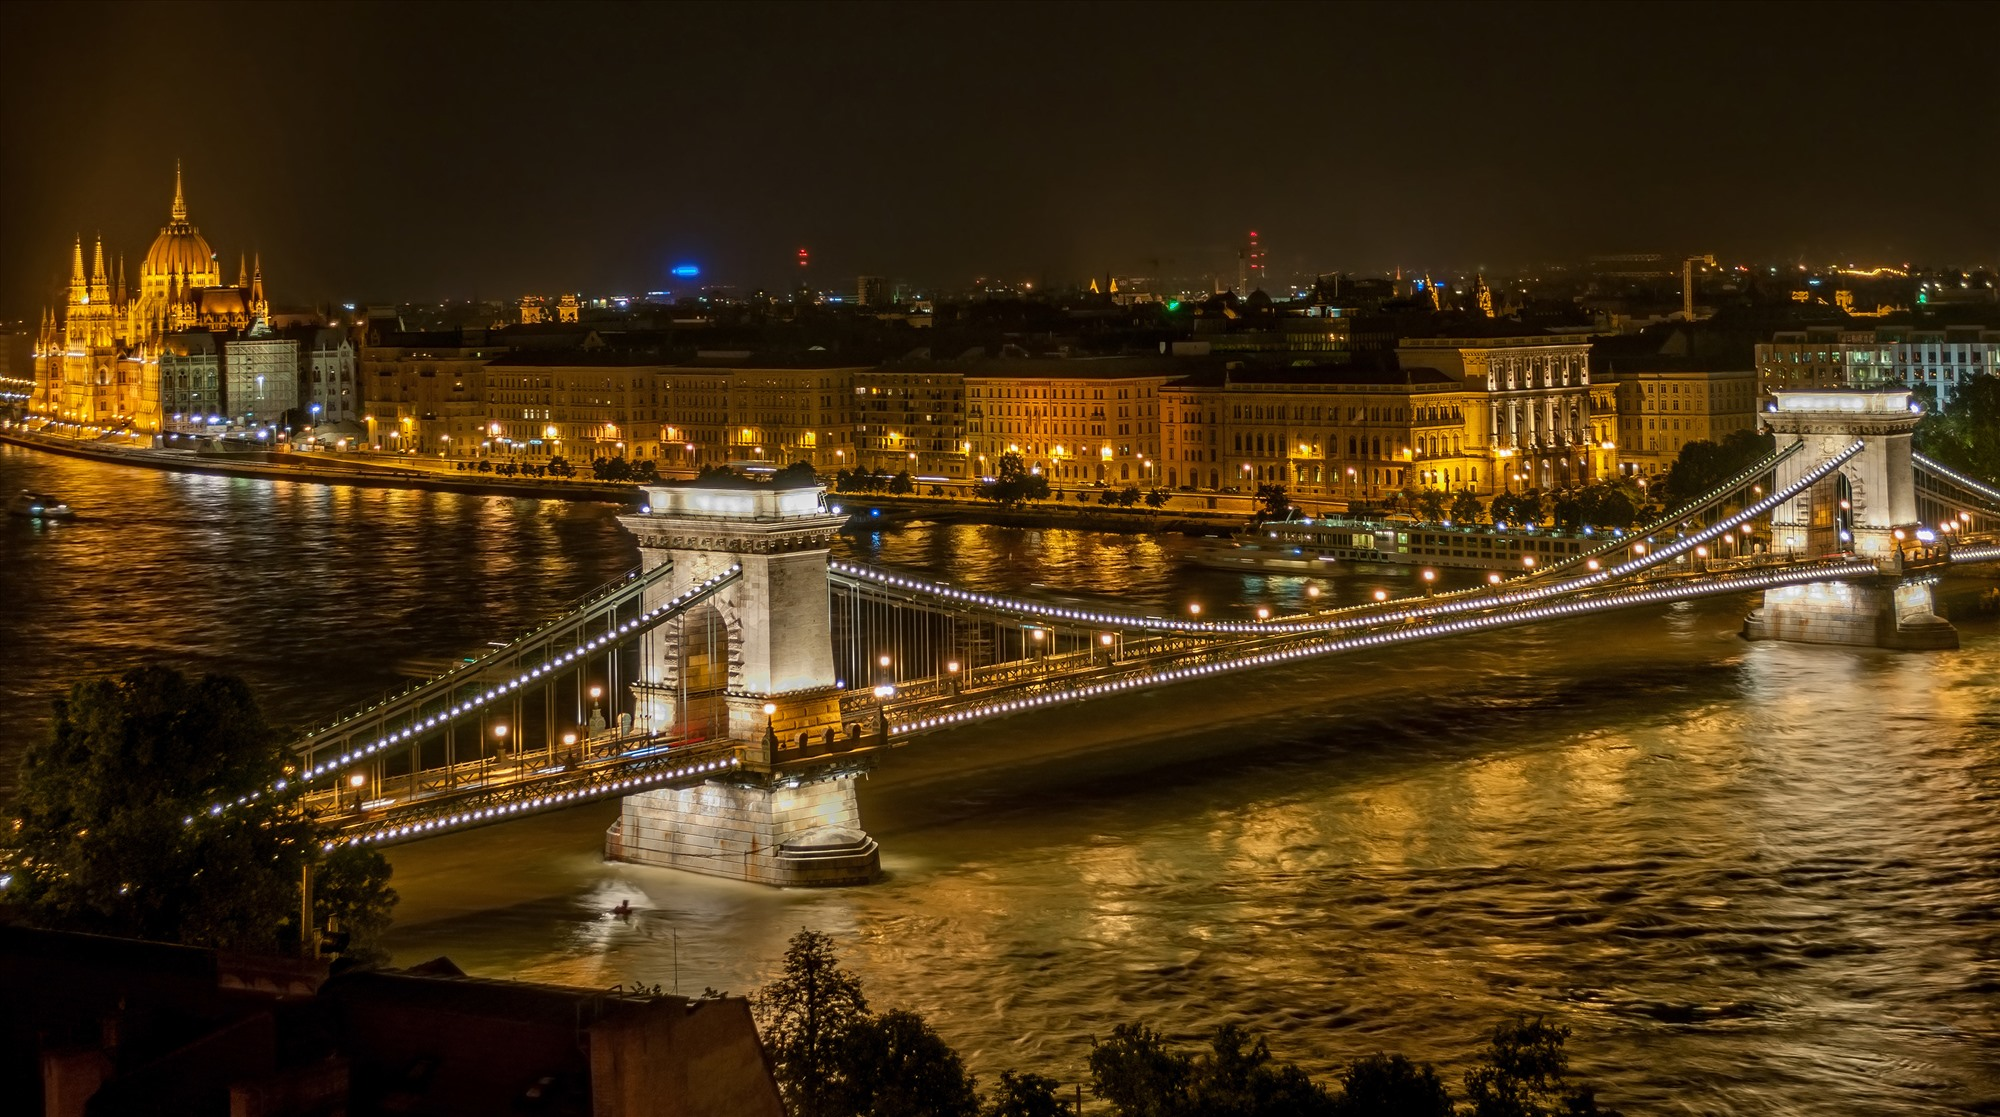 Chain Bridge is in Budapest, Hungary. The bridge makes the city more charming and attractive to visitors, especially at night.